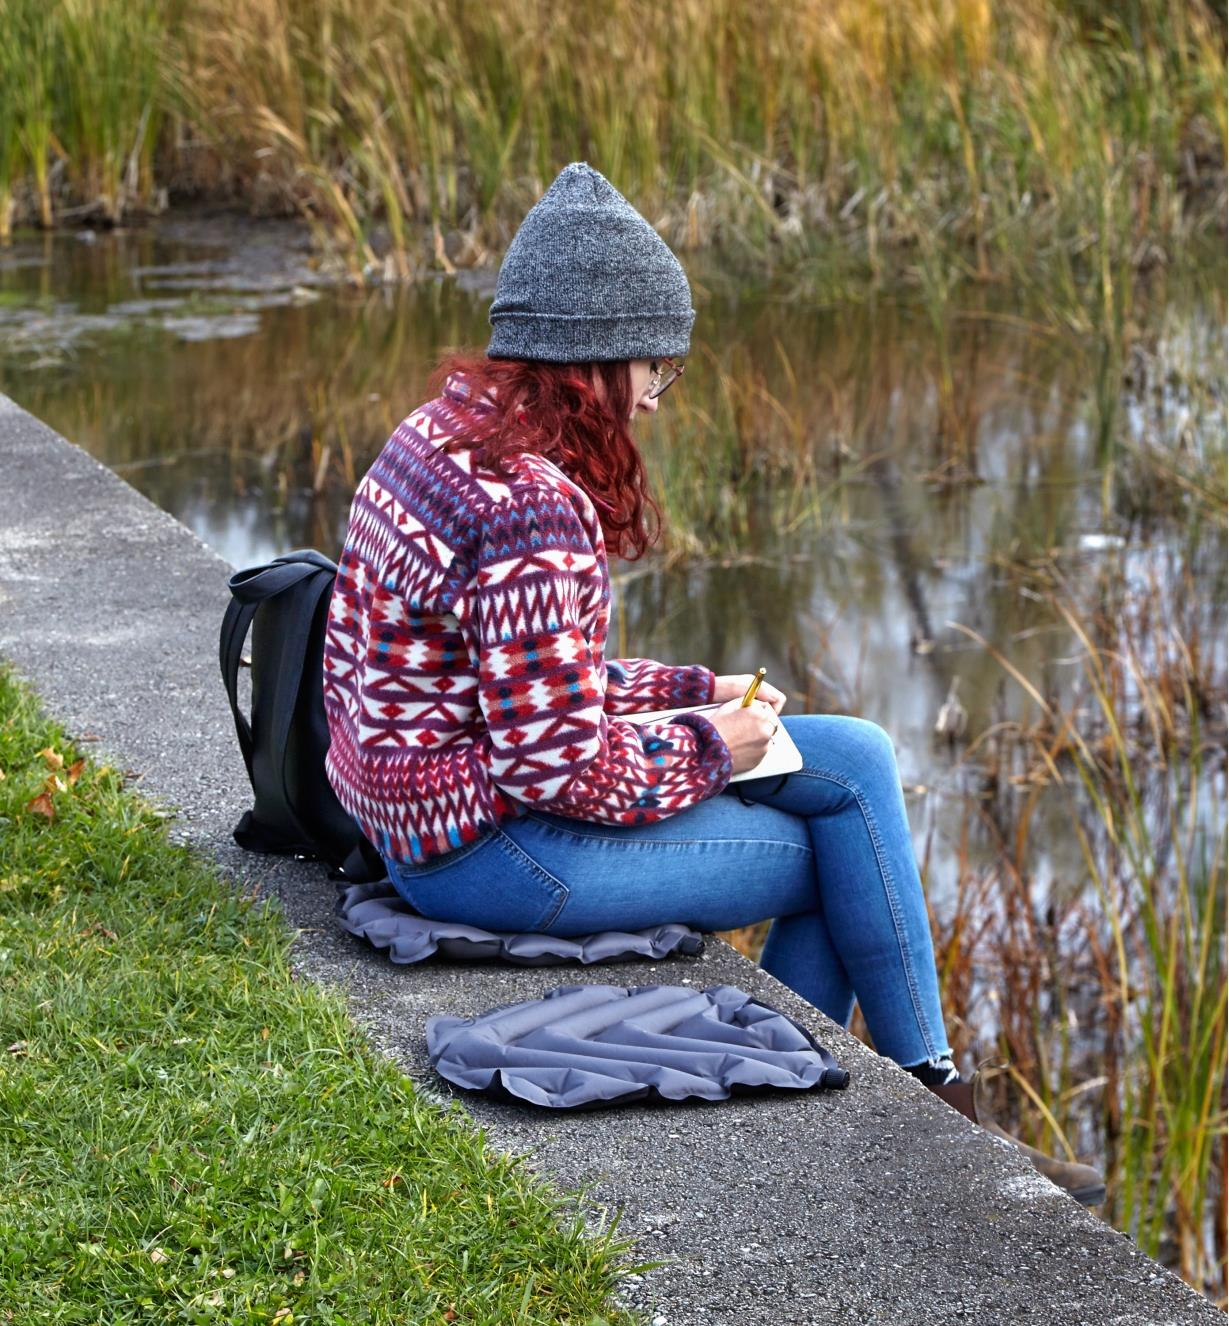 A woman sits on an inflatable seat cushion placed on a concrete ledge while writing notes outdoors